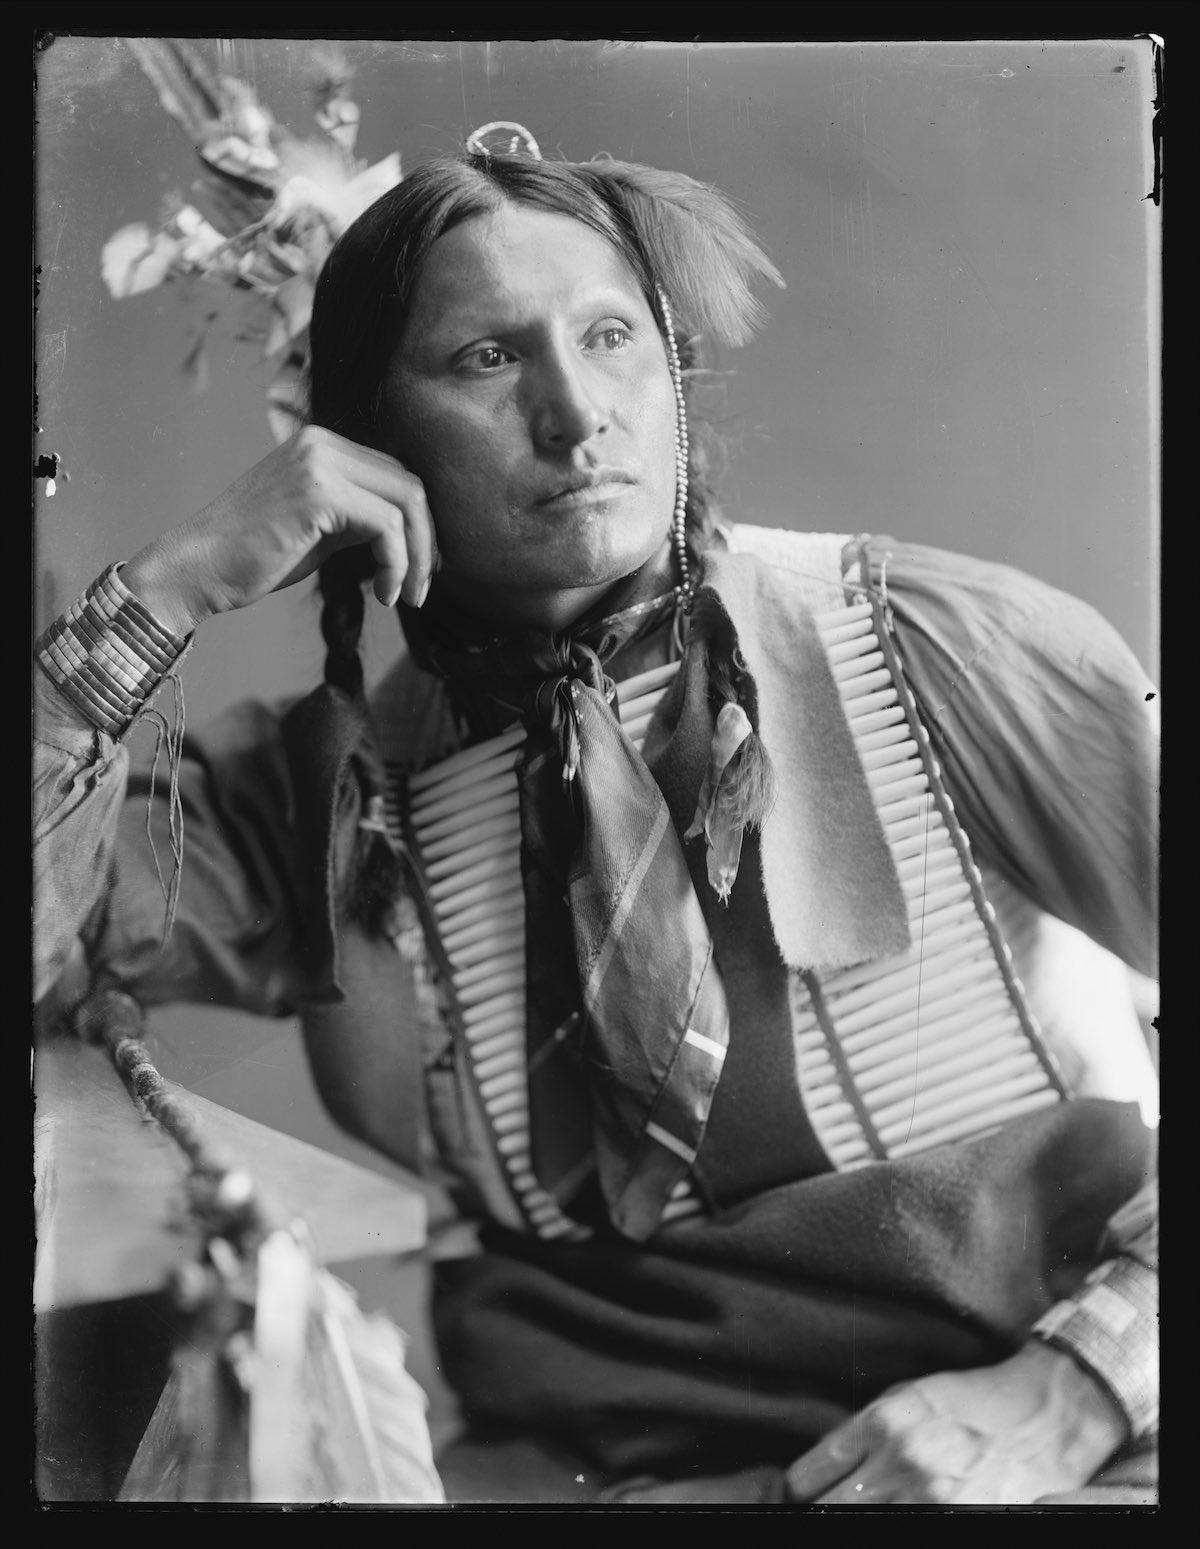 Samuel American Horse, American Indian from Buffalo Bill's Show